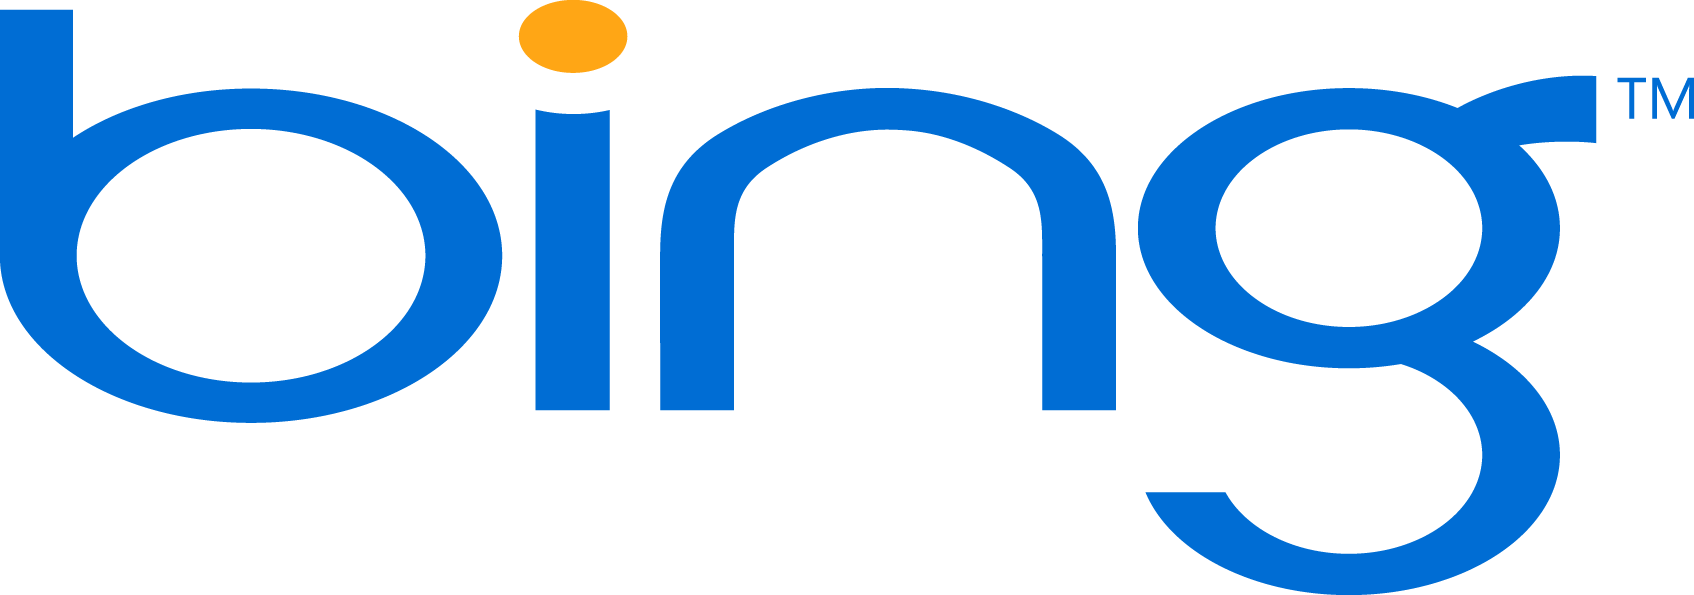 Old Bing Logo